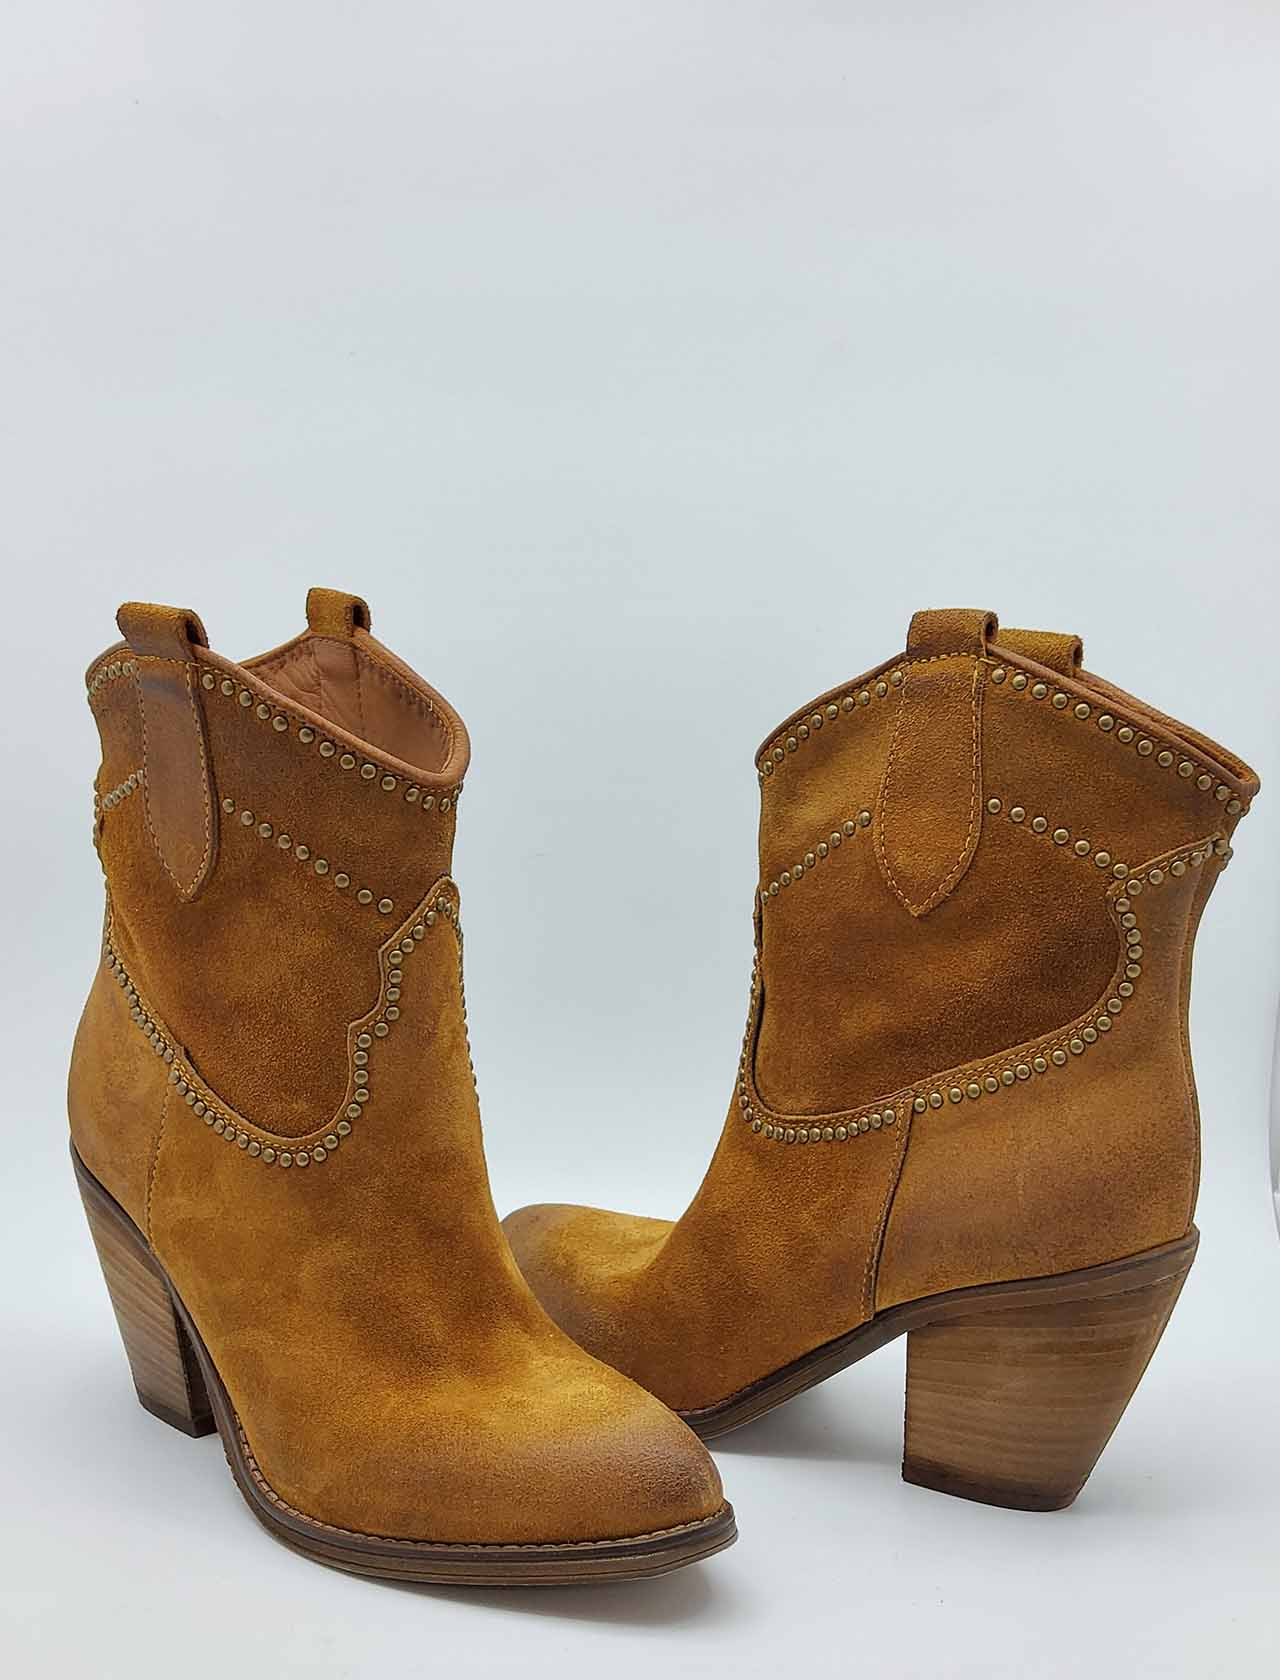 Women's Shoes Texan Ankle Boots in Leather Suede with Aged Studs and Leather Heel Zoe | Ankle Boots | CREEK01014